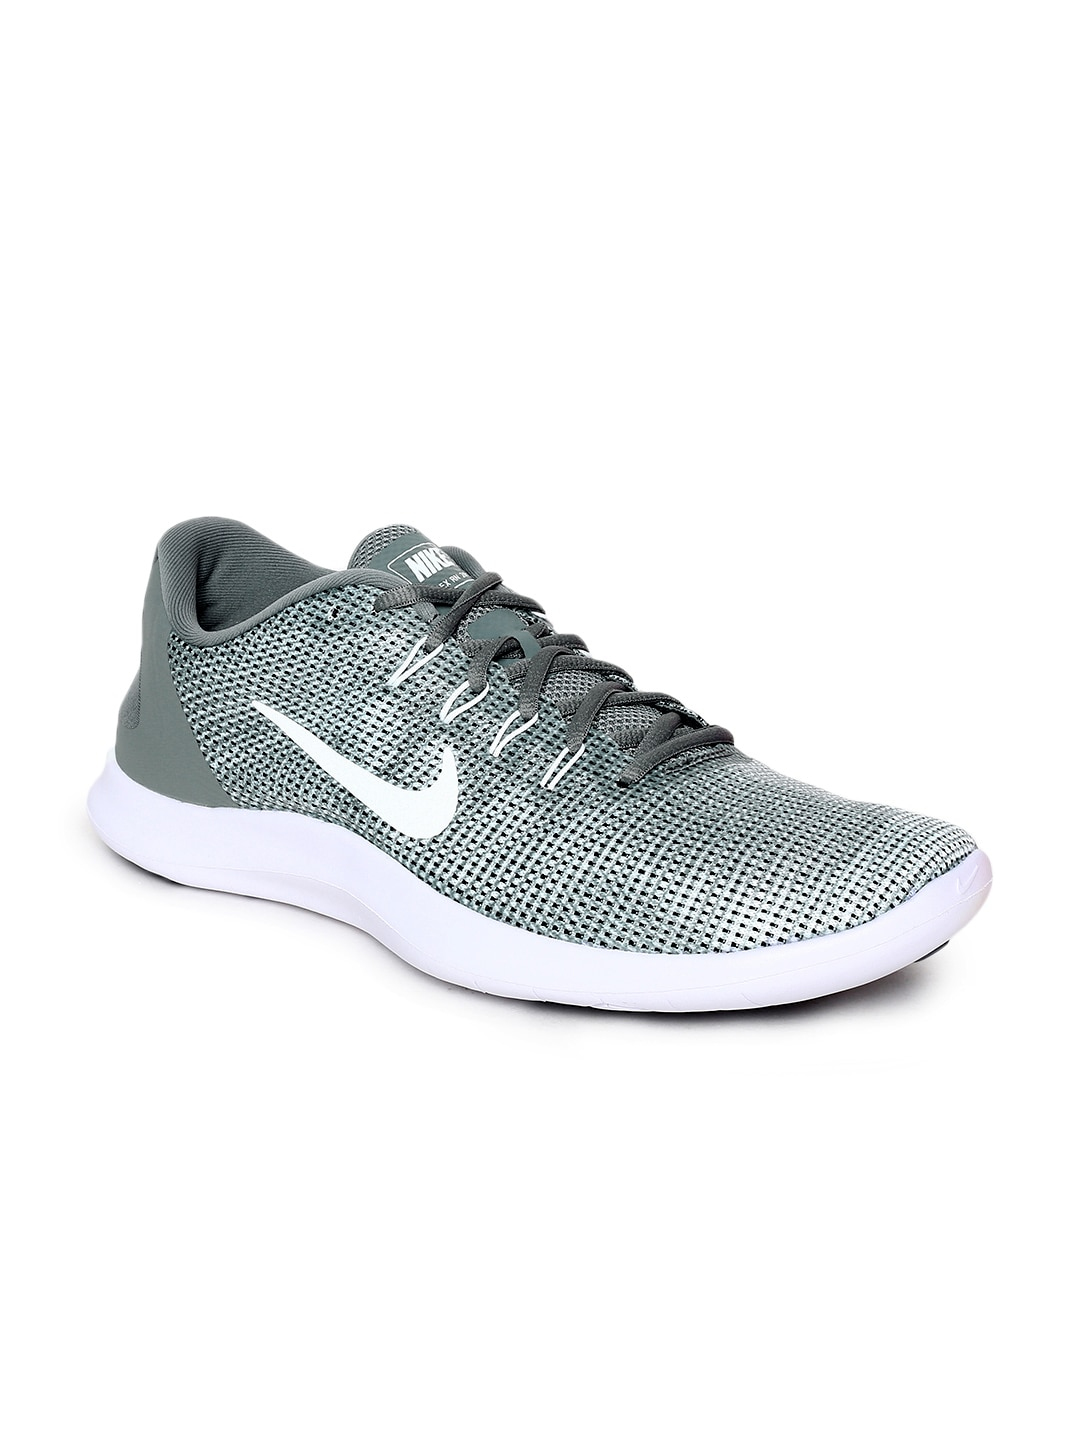 8c9cd6c55c99b Nike Shoes for Men - Buy Men s Nike Shoes Online